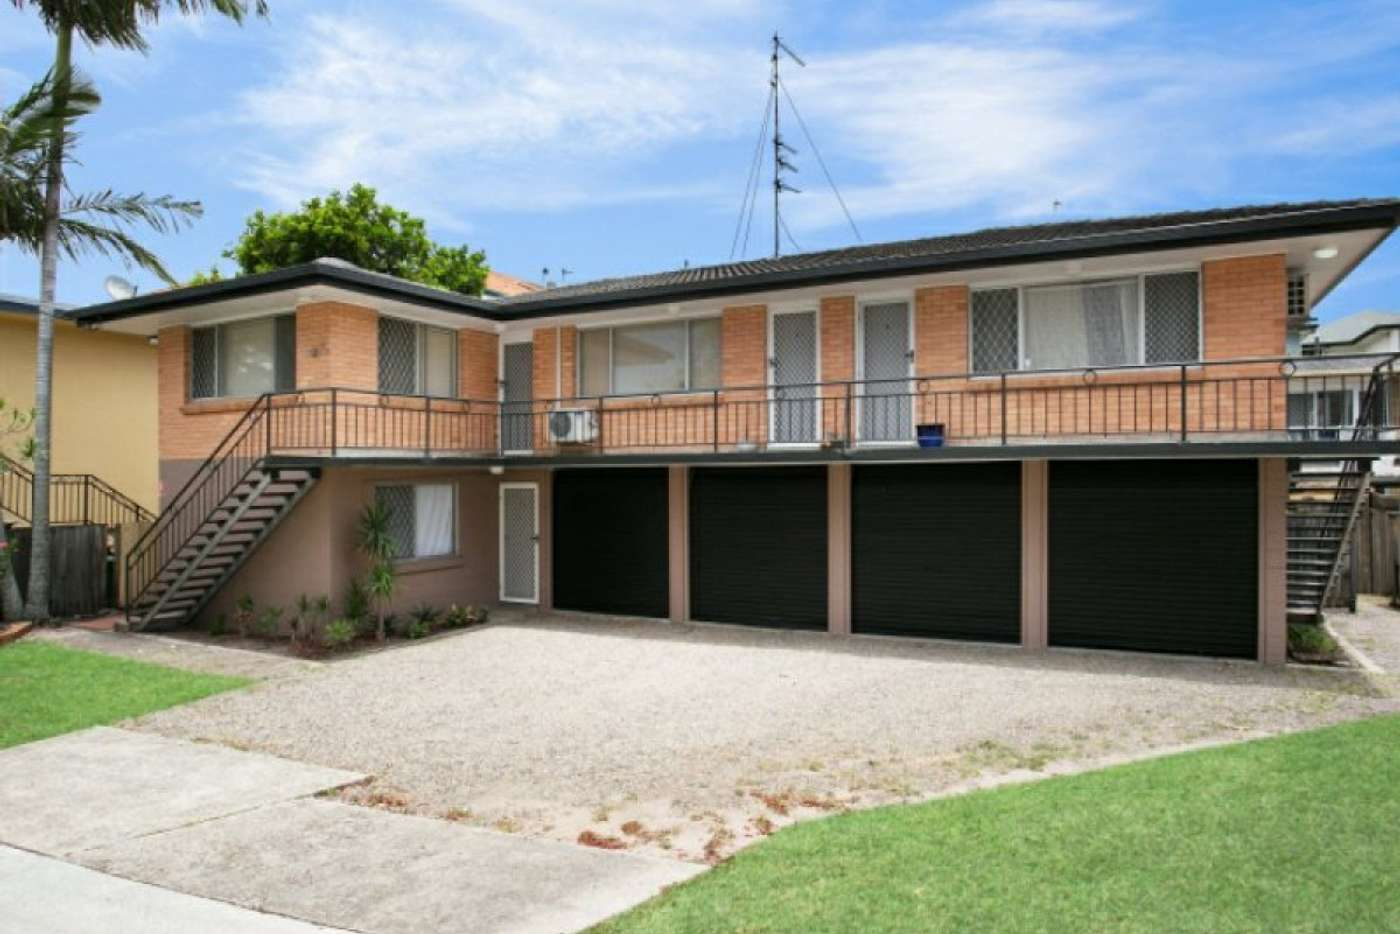 Main view of Homely unit listing, 4/10 Rylie Street, Surfers Paradise QLD 4217